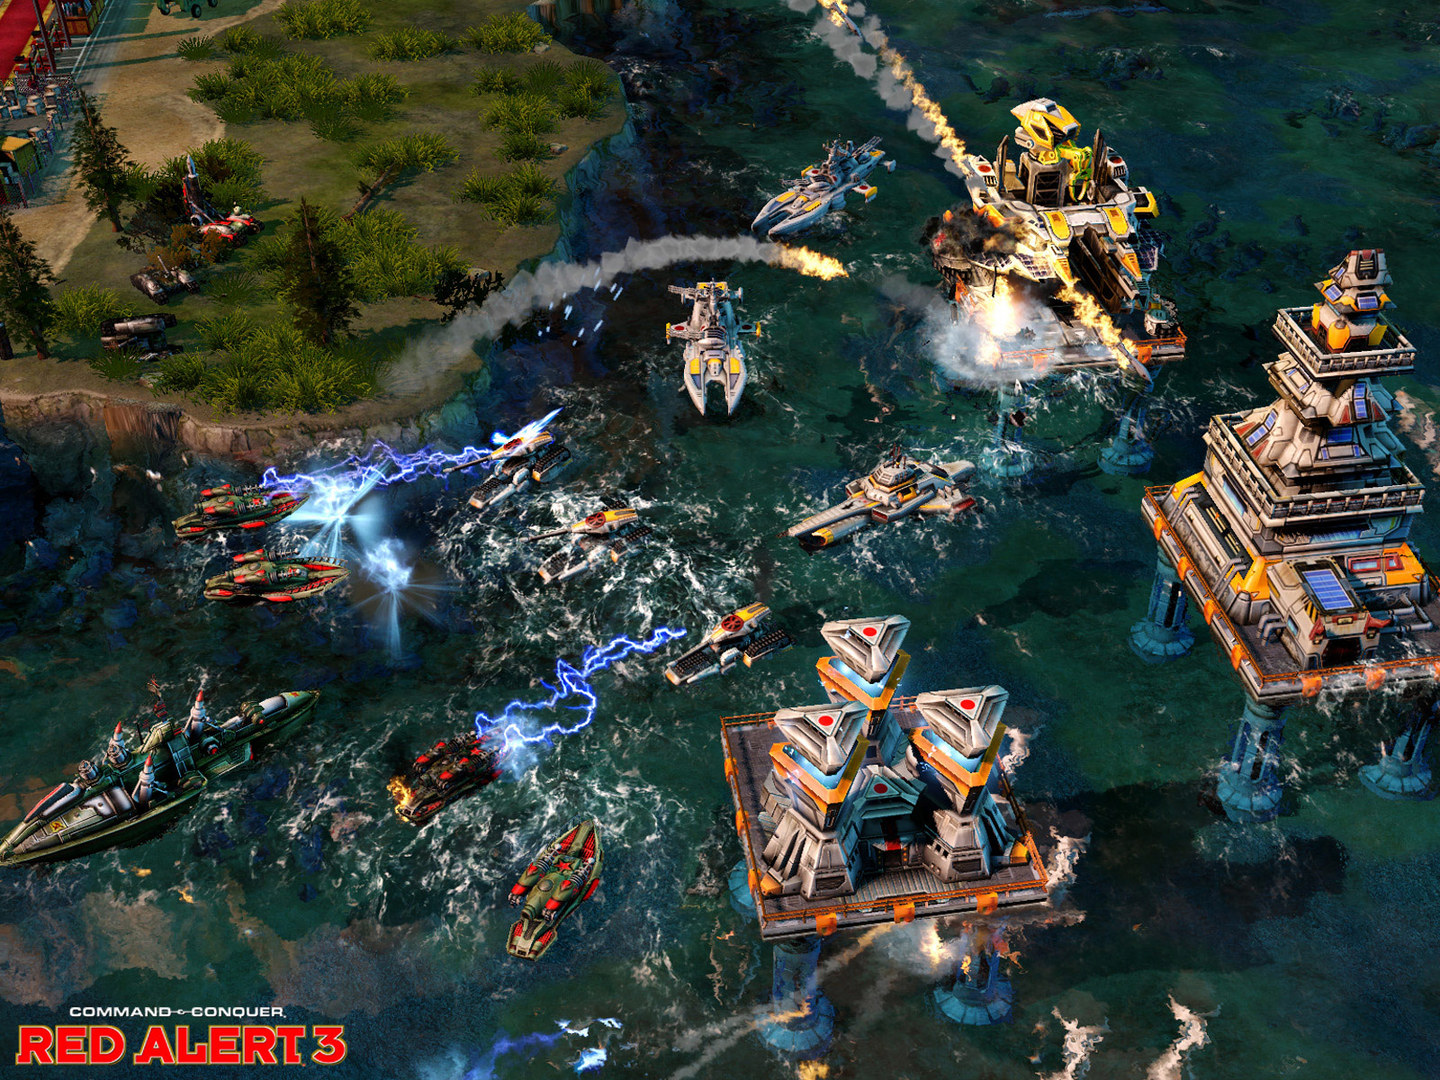 Command & Conquer: Red Alert 3 on Steam